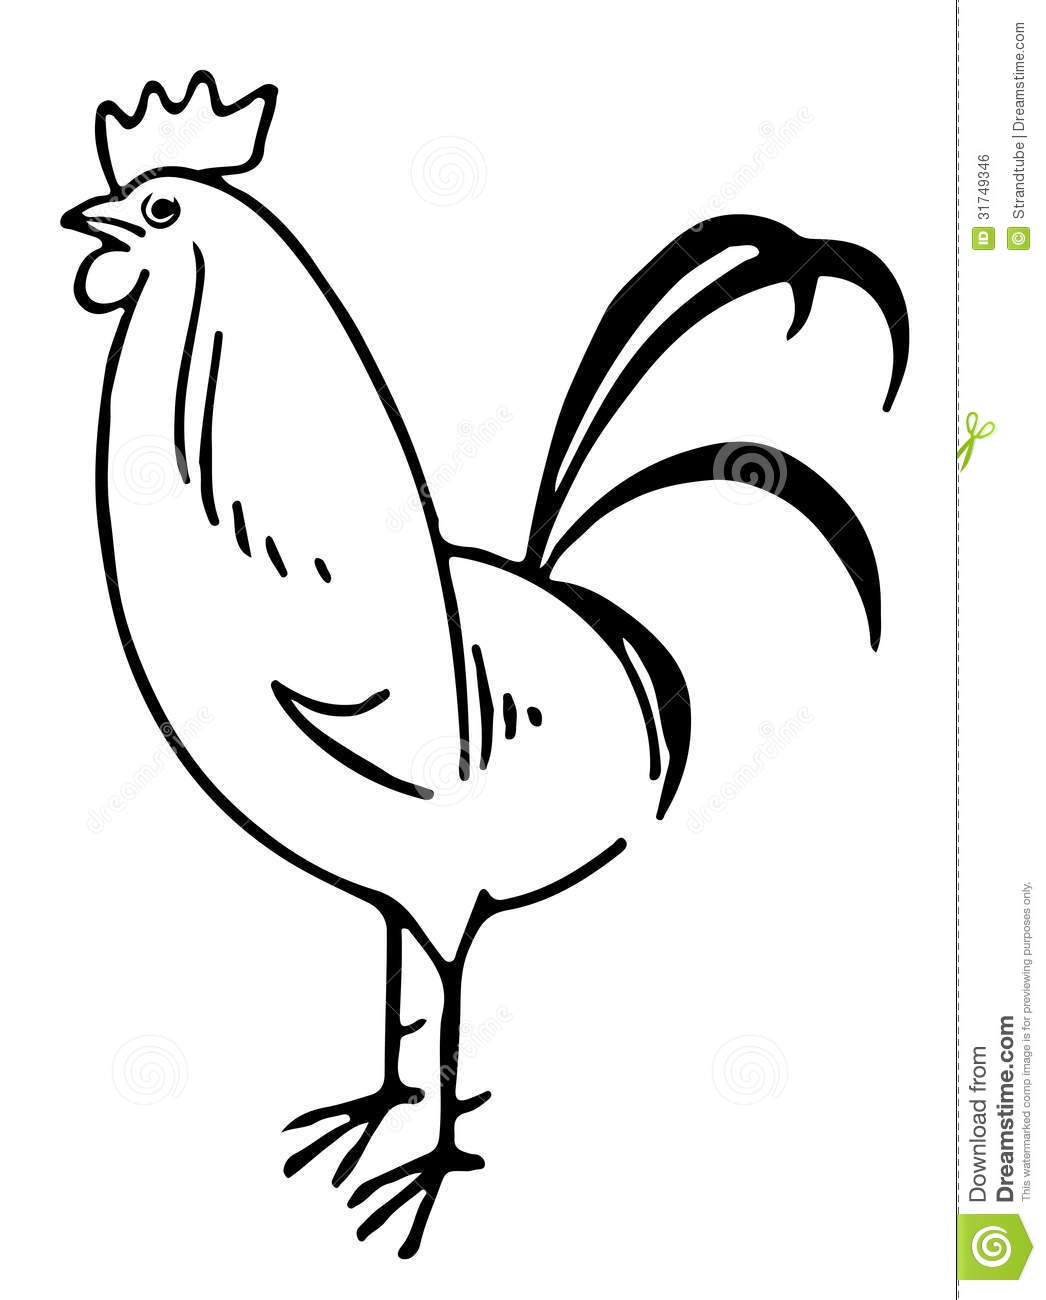 Line Drawing Rooster : Line illustration of a rooster eps stock vector image